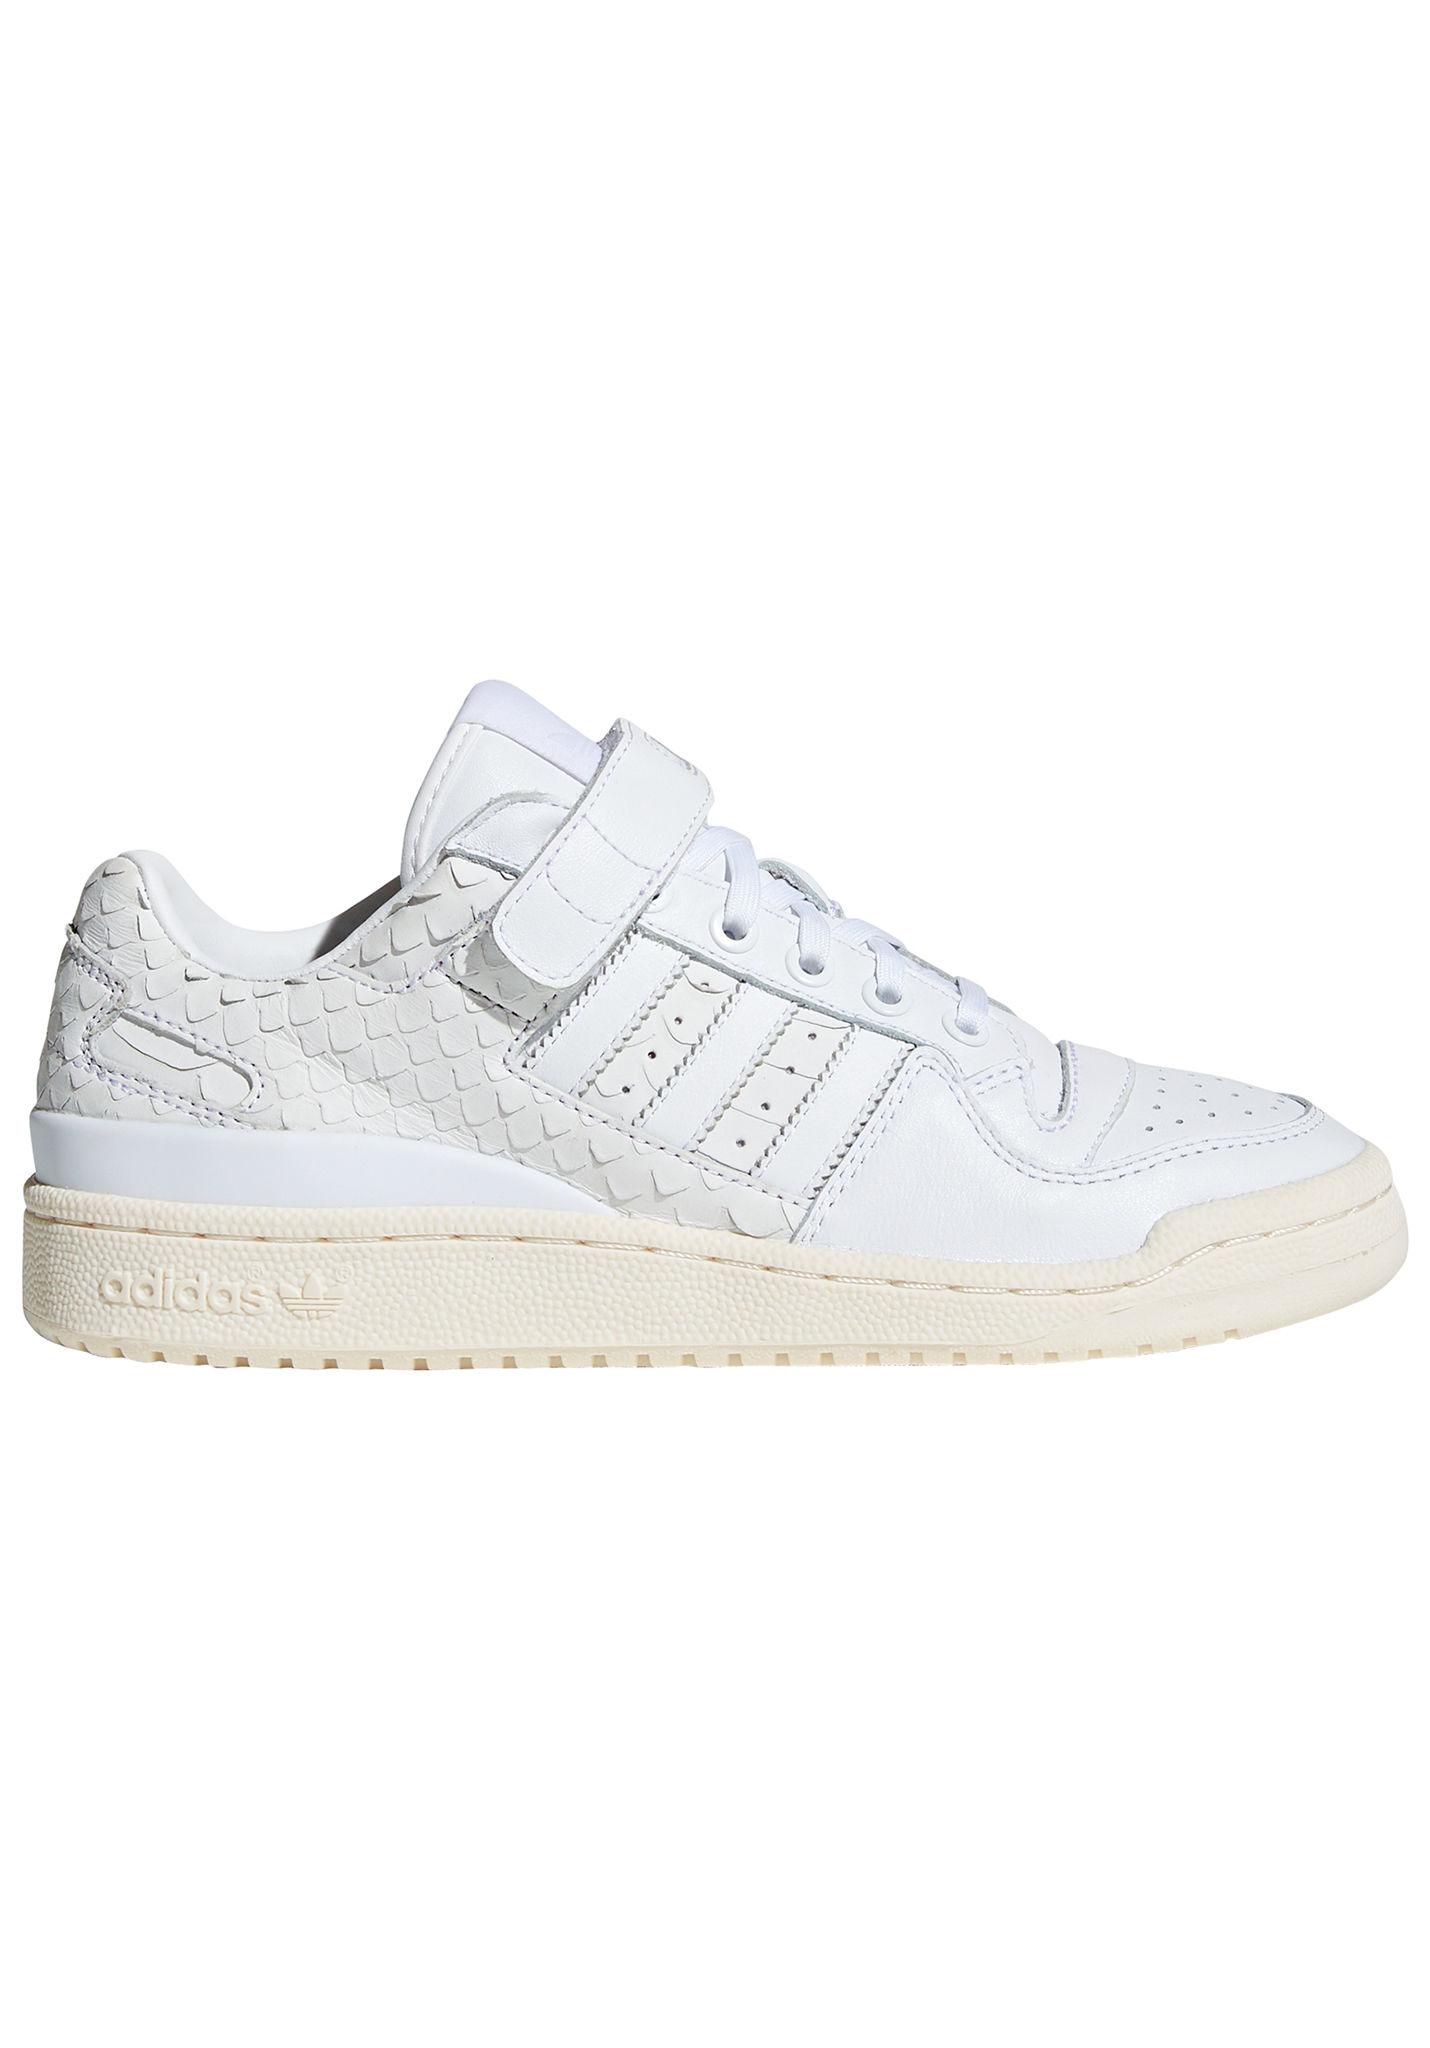 buy popular c518a 55962 ADIDAS ORIGINALS Forum Lo - Sneakers for Women - White - Planet Sports